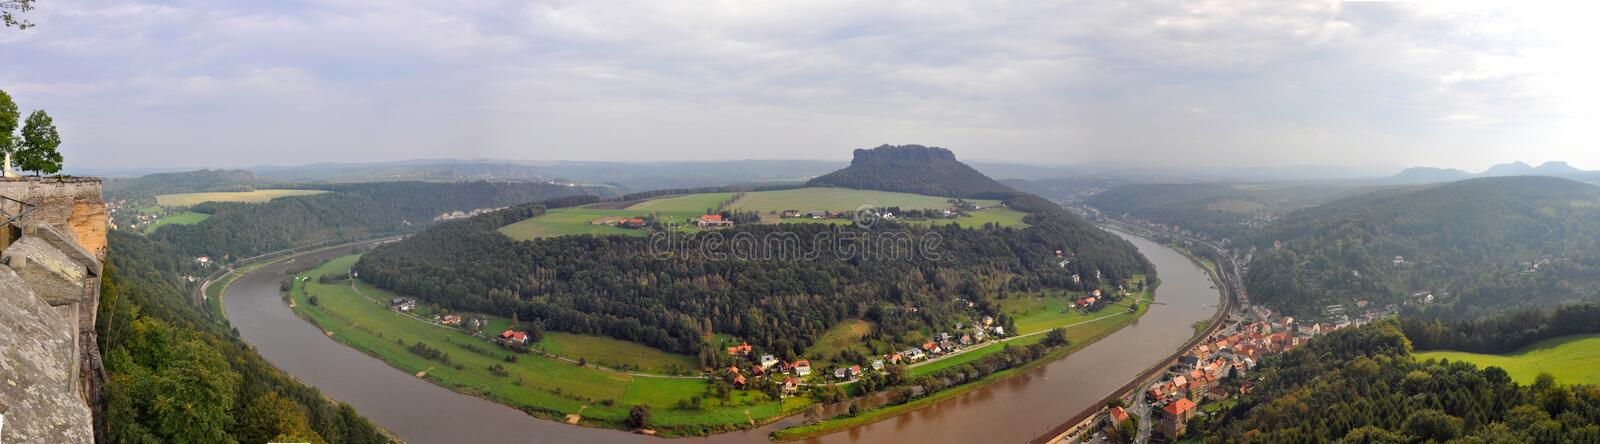 Panoramic view of river Elbe, Germany - from Bastei rocks in Saxon Switzerland stock photo